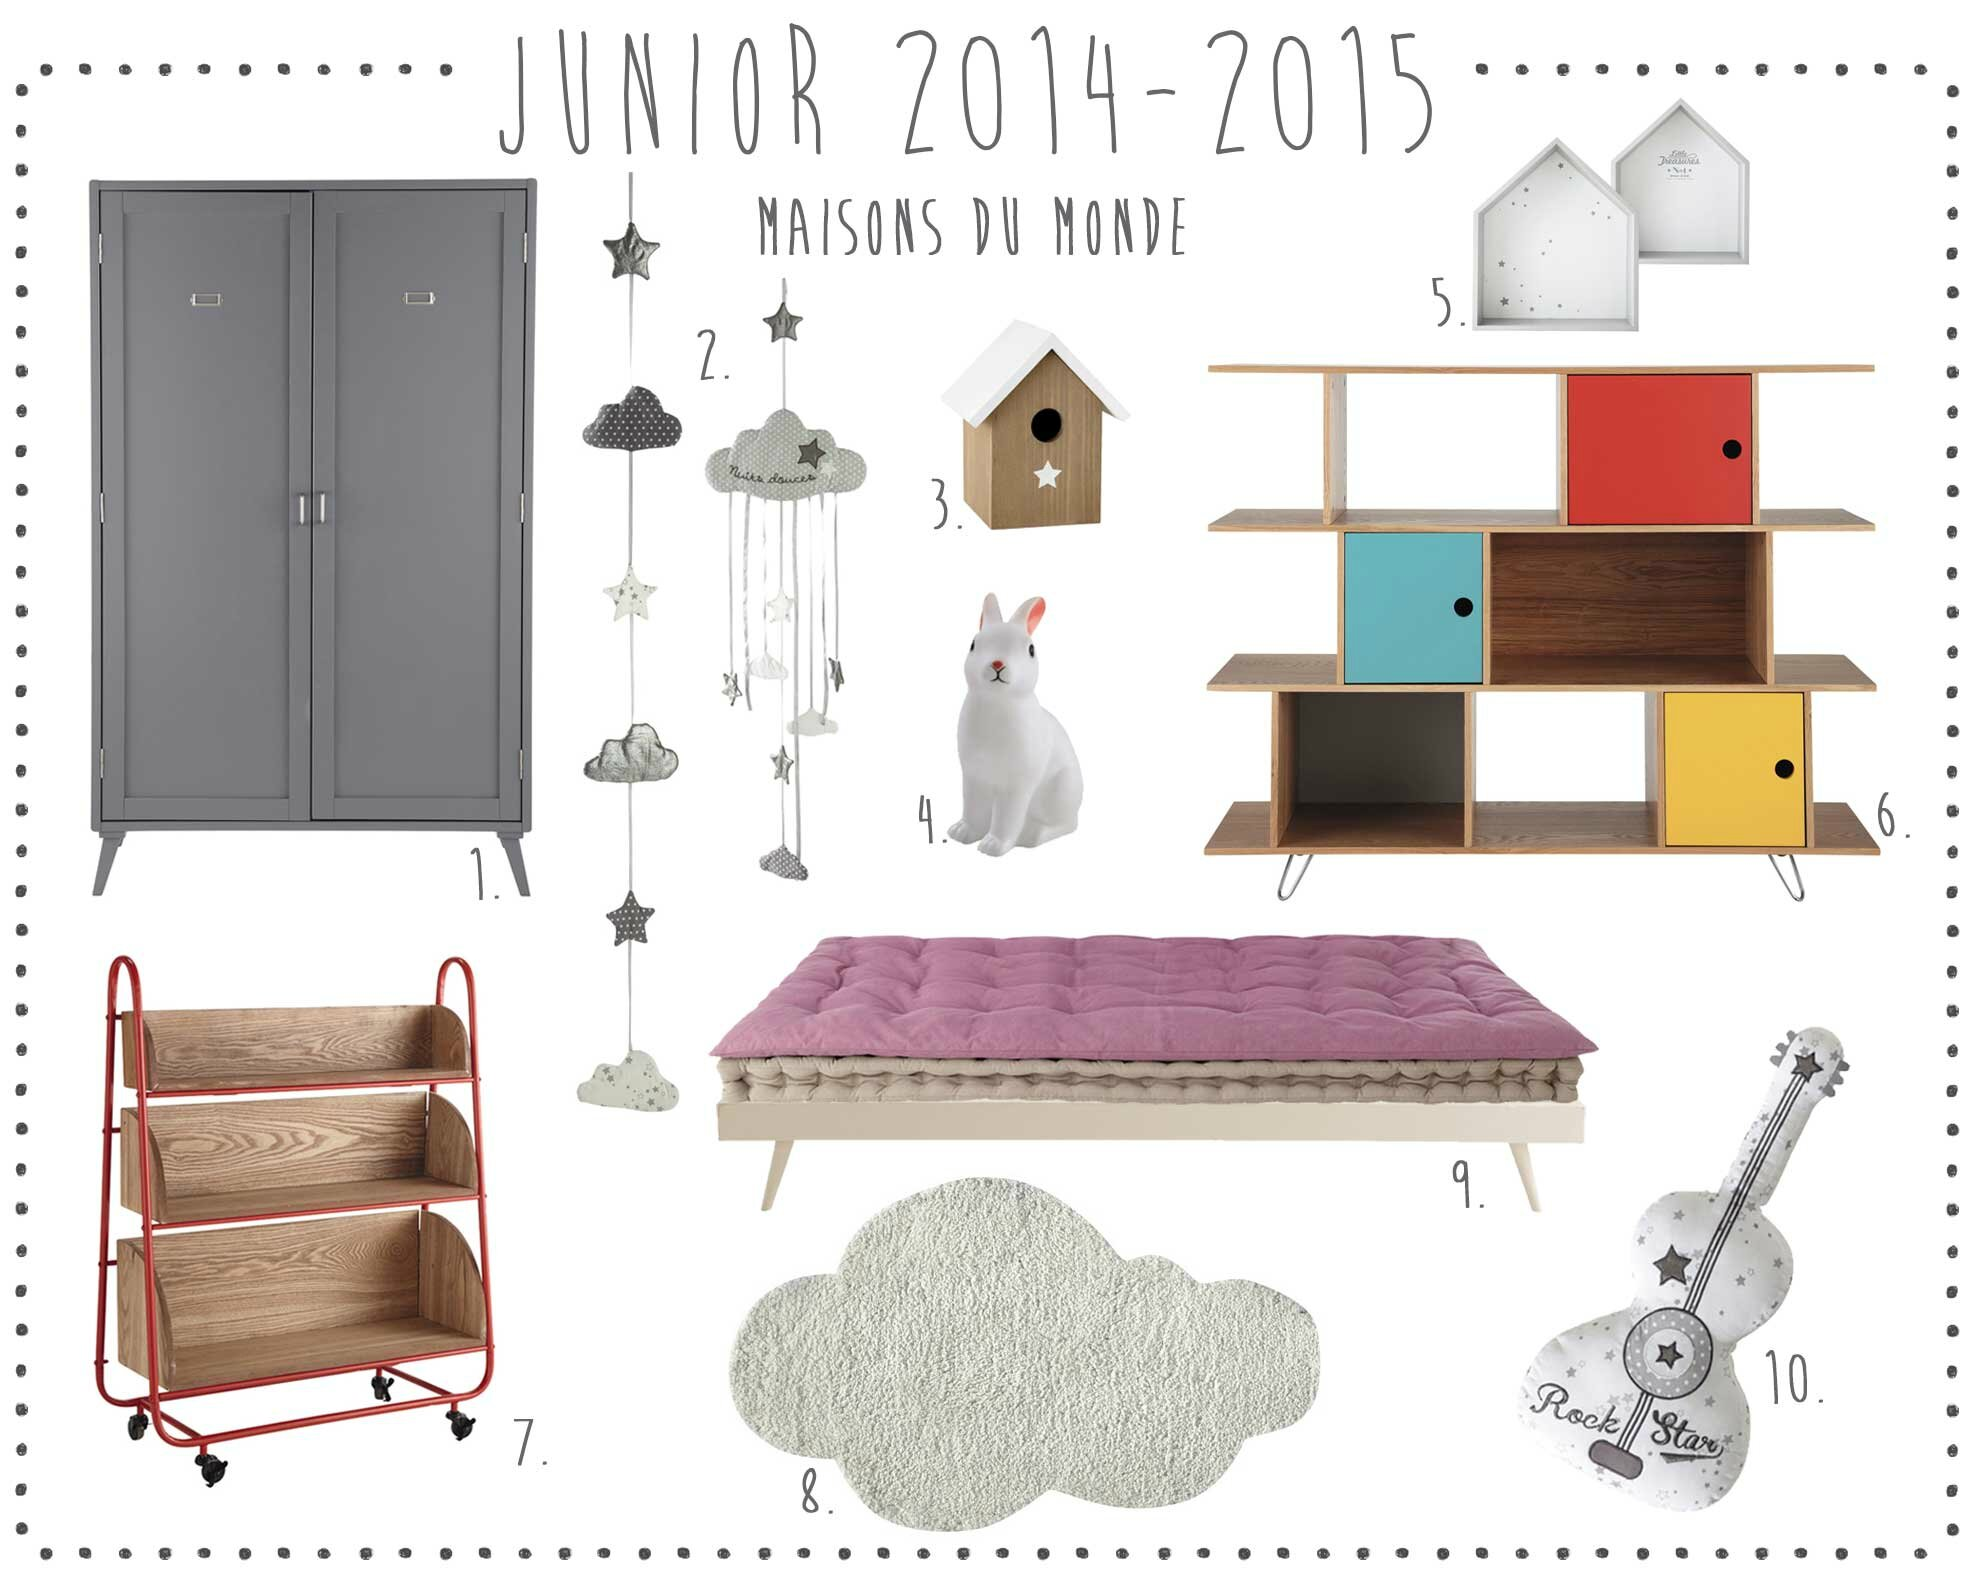 Ma wishlist du catalogue junior maisons du monde 2014 2015 for Maisonsdumonde com nous contacter